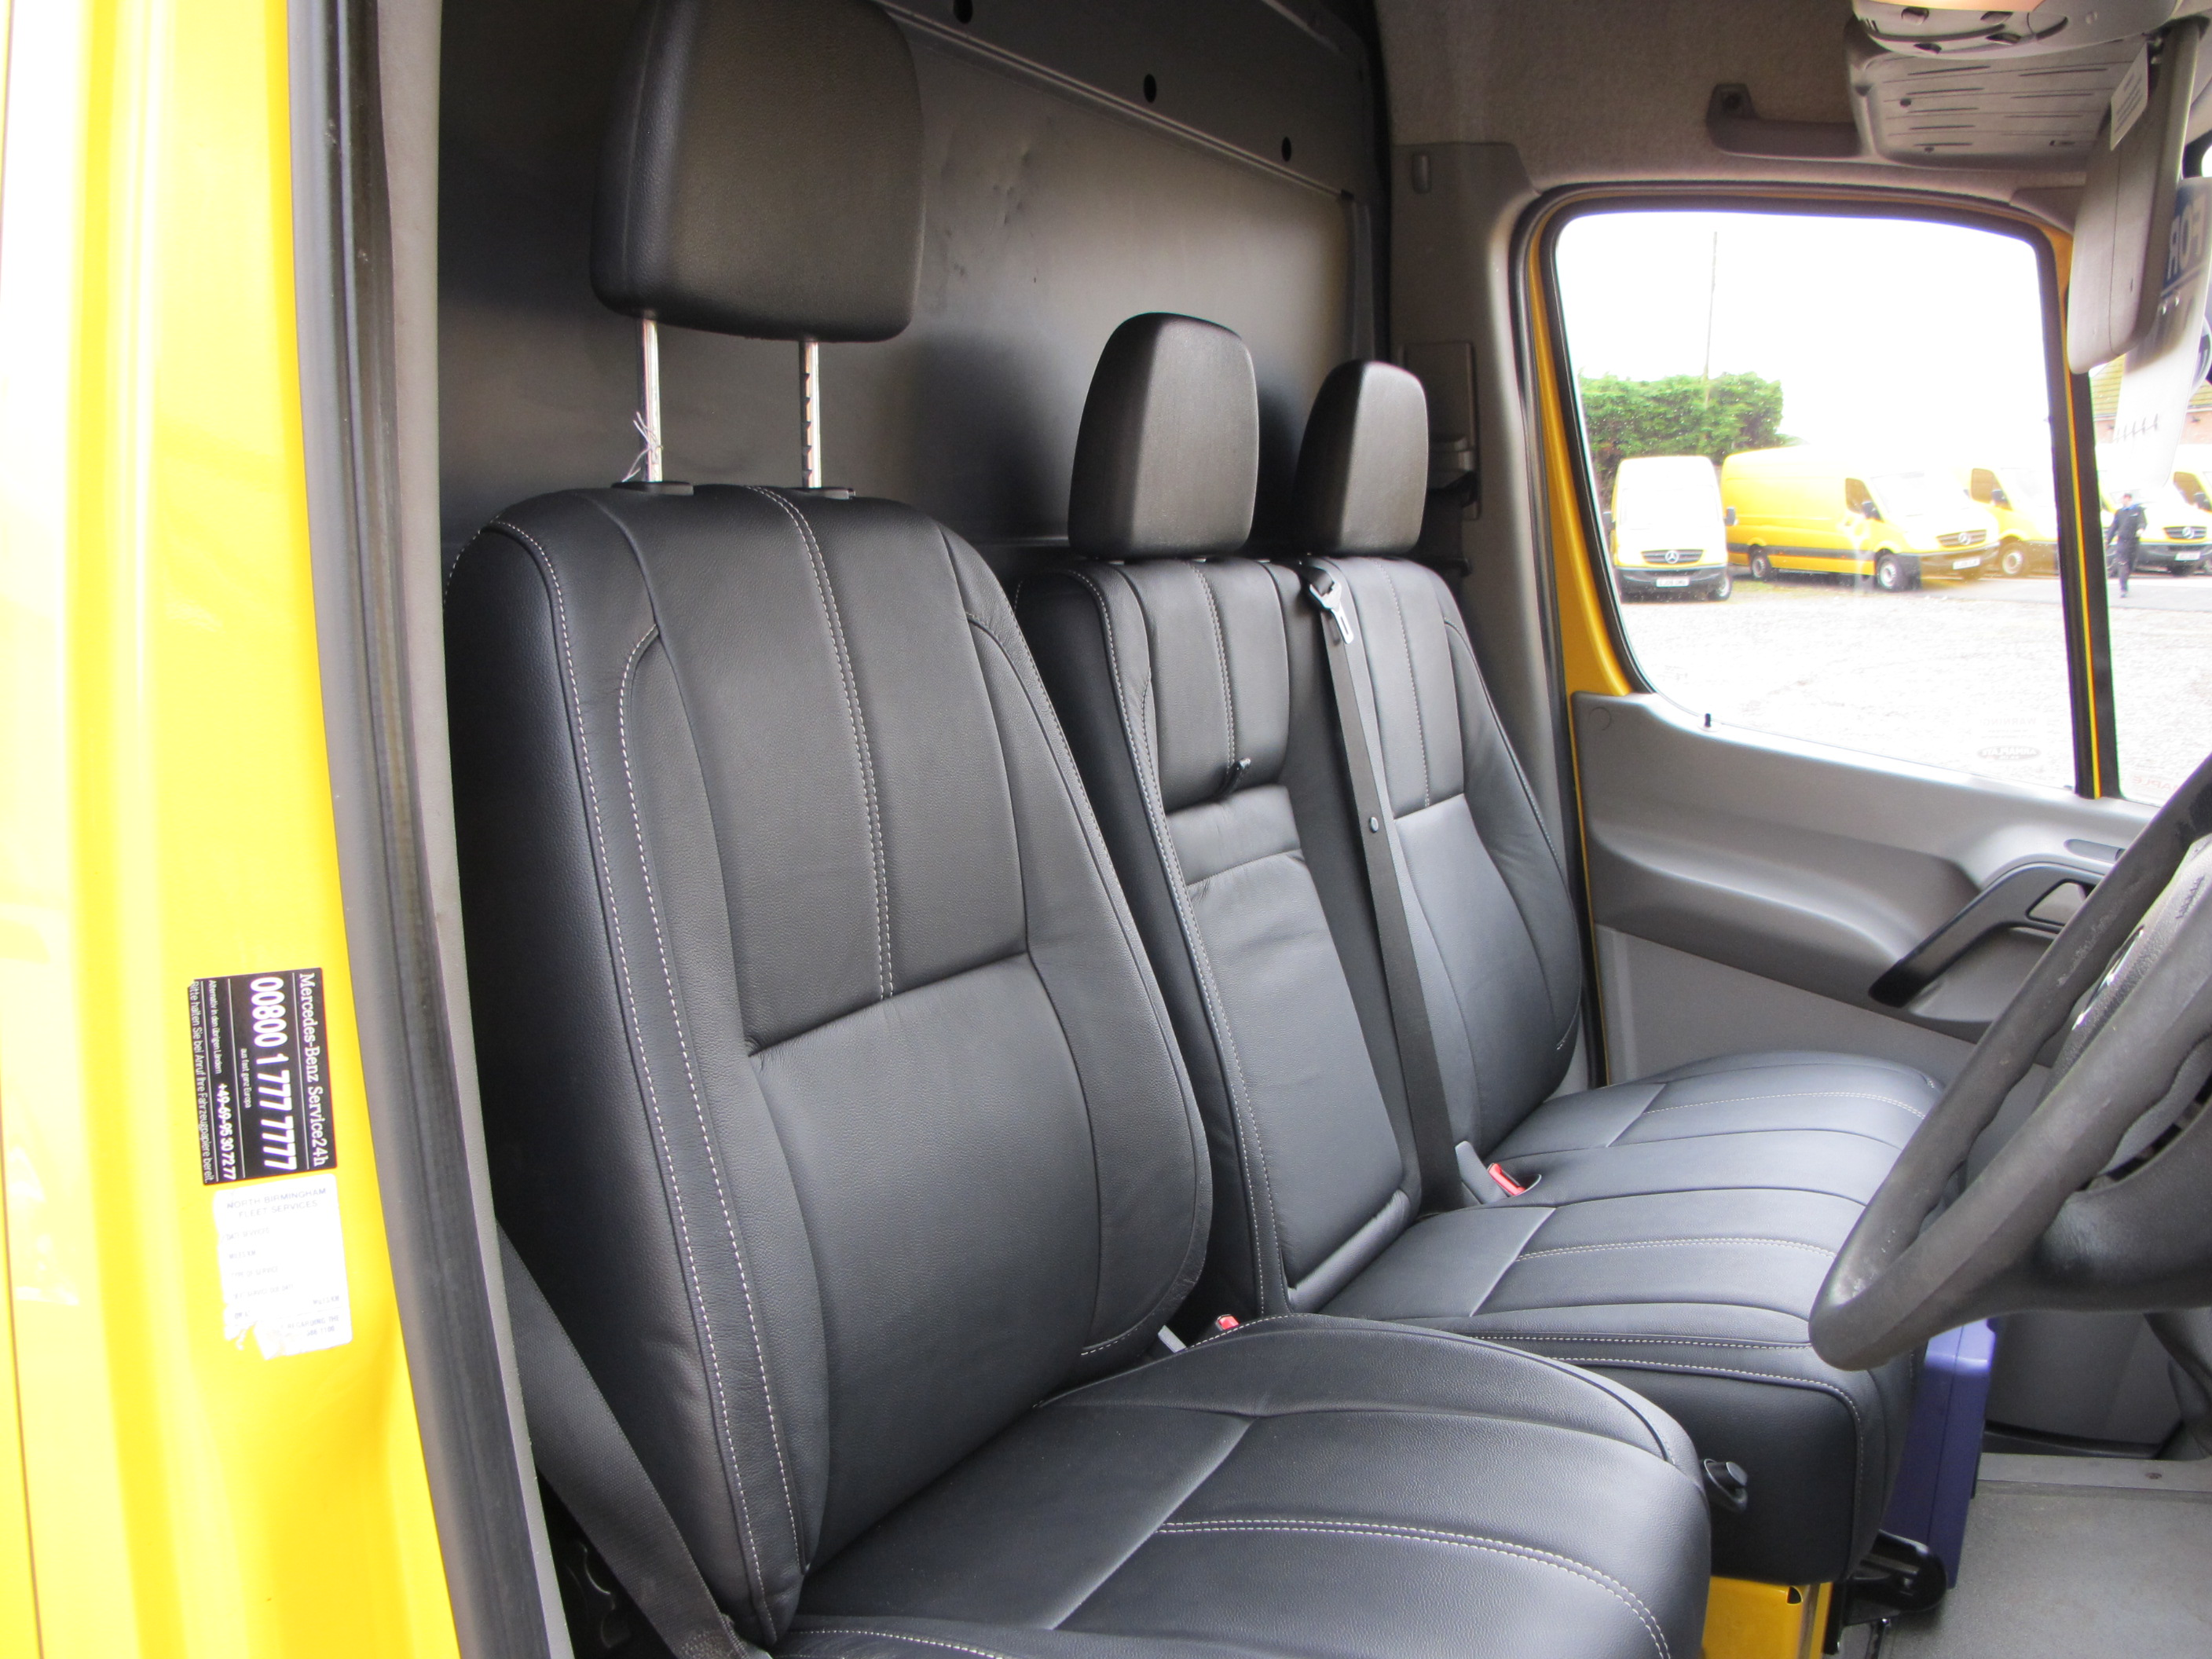 Mercedes sprinter seat covers velcromag for Mercedes benz sprinter seats